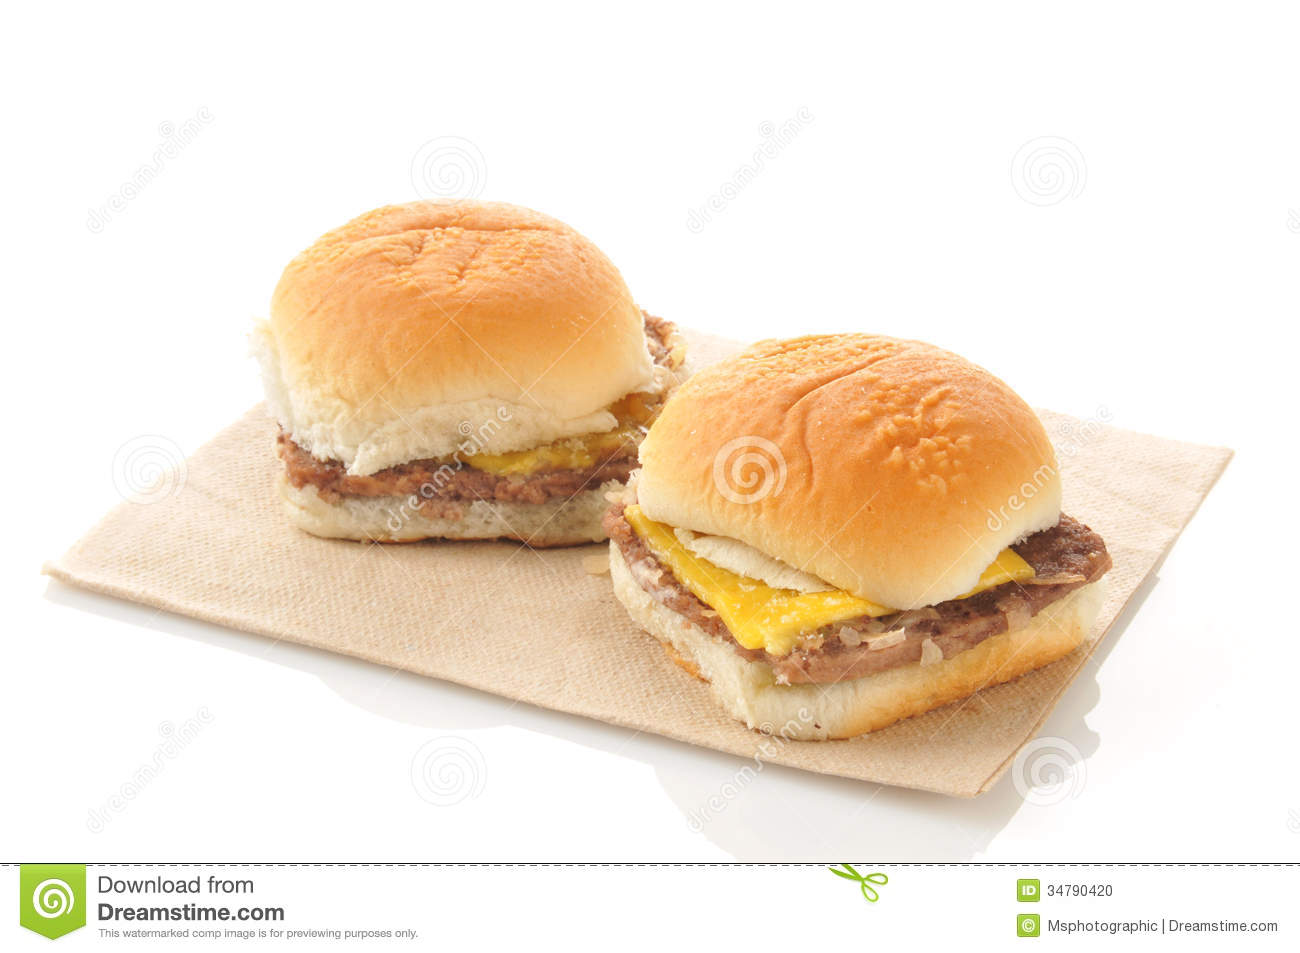 Bacon Cheeseburger Clip Art Cheeseburger sliders on aBacon Cheeseburger Clip Art